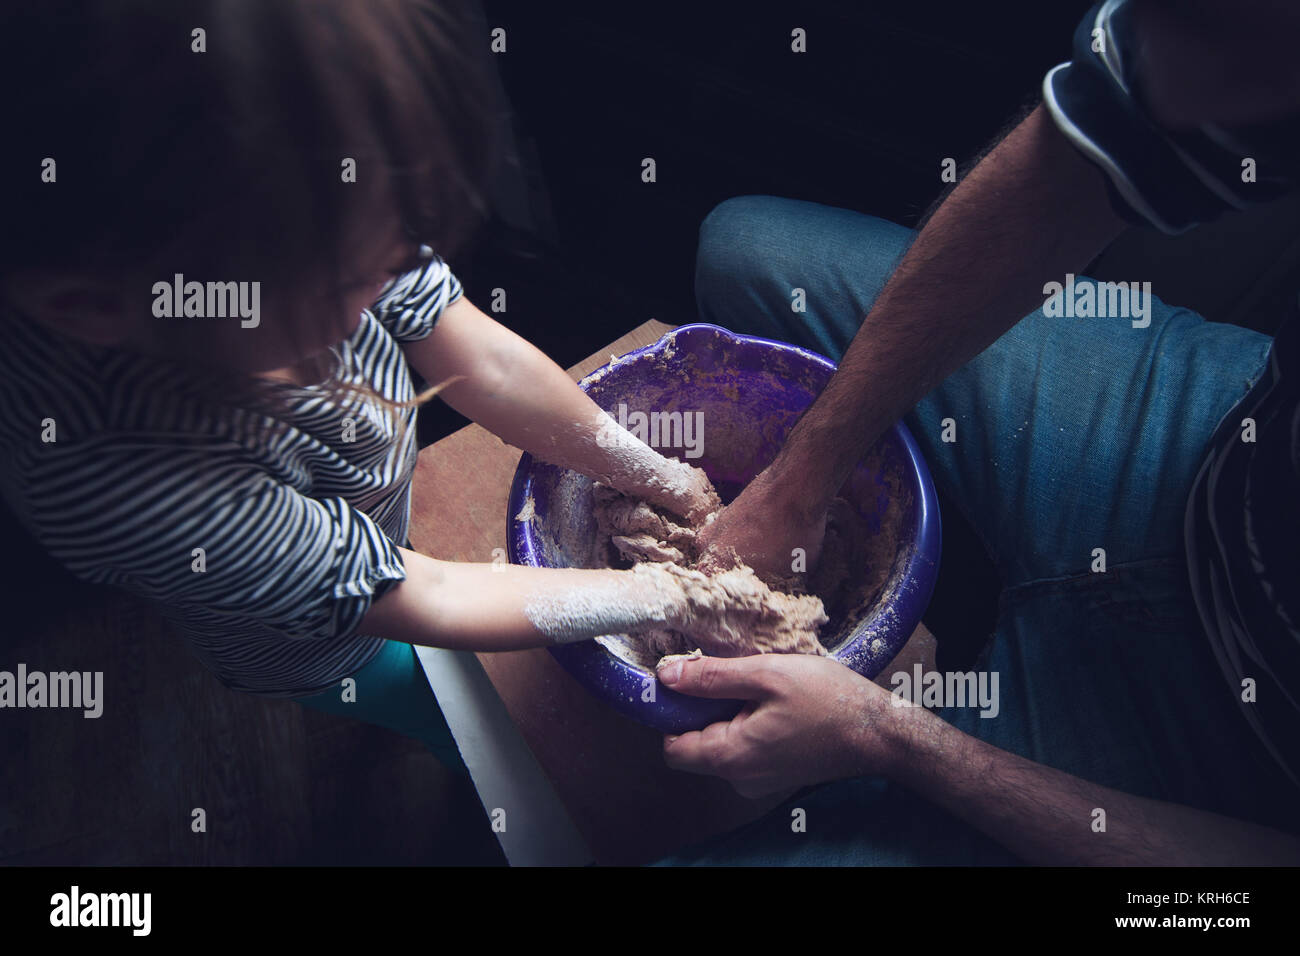 Father and daughter doing some dirty family cooking - Stock Image